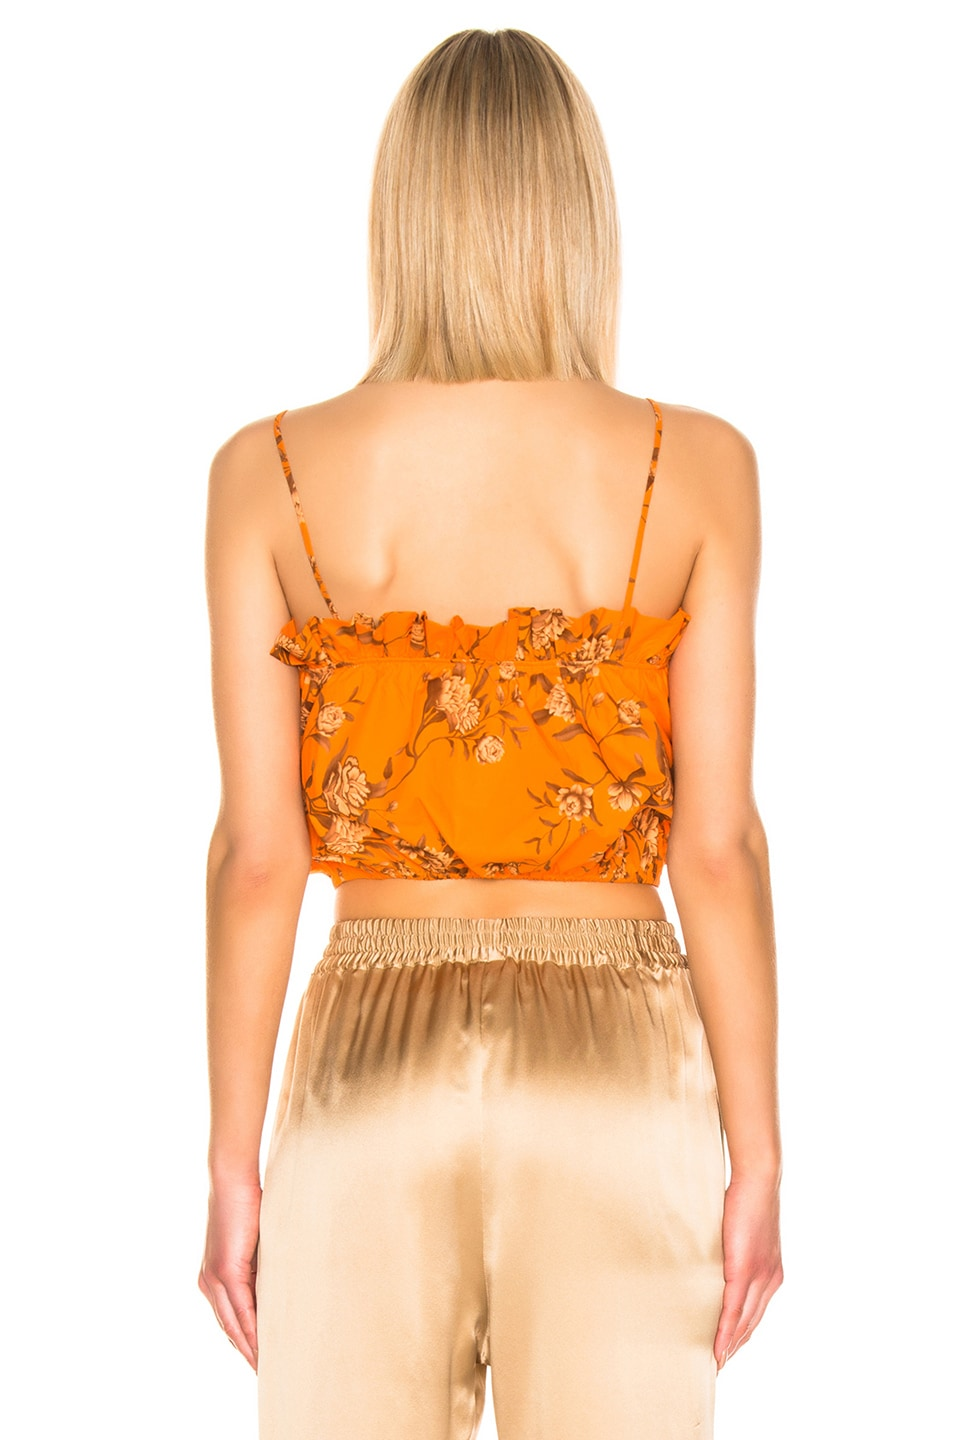 Image 3 of Johanna Ortiz Feu De Bois Top in Monk Orange & Camel